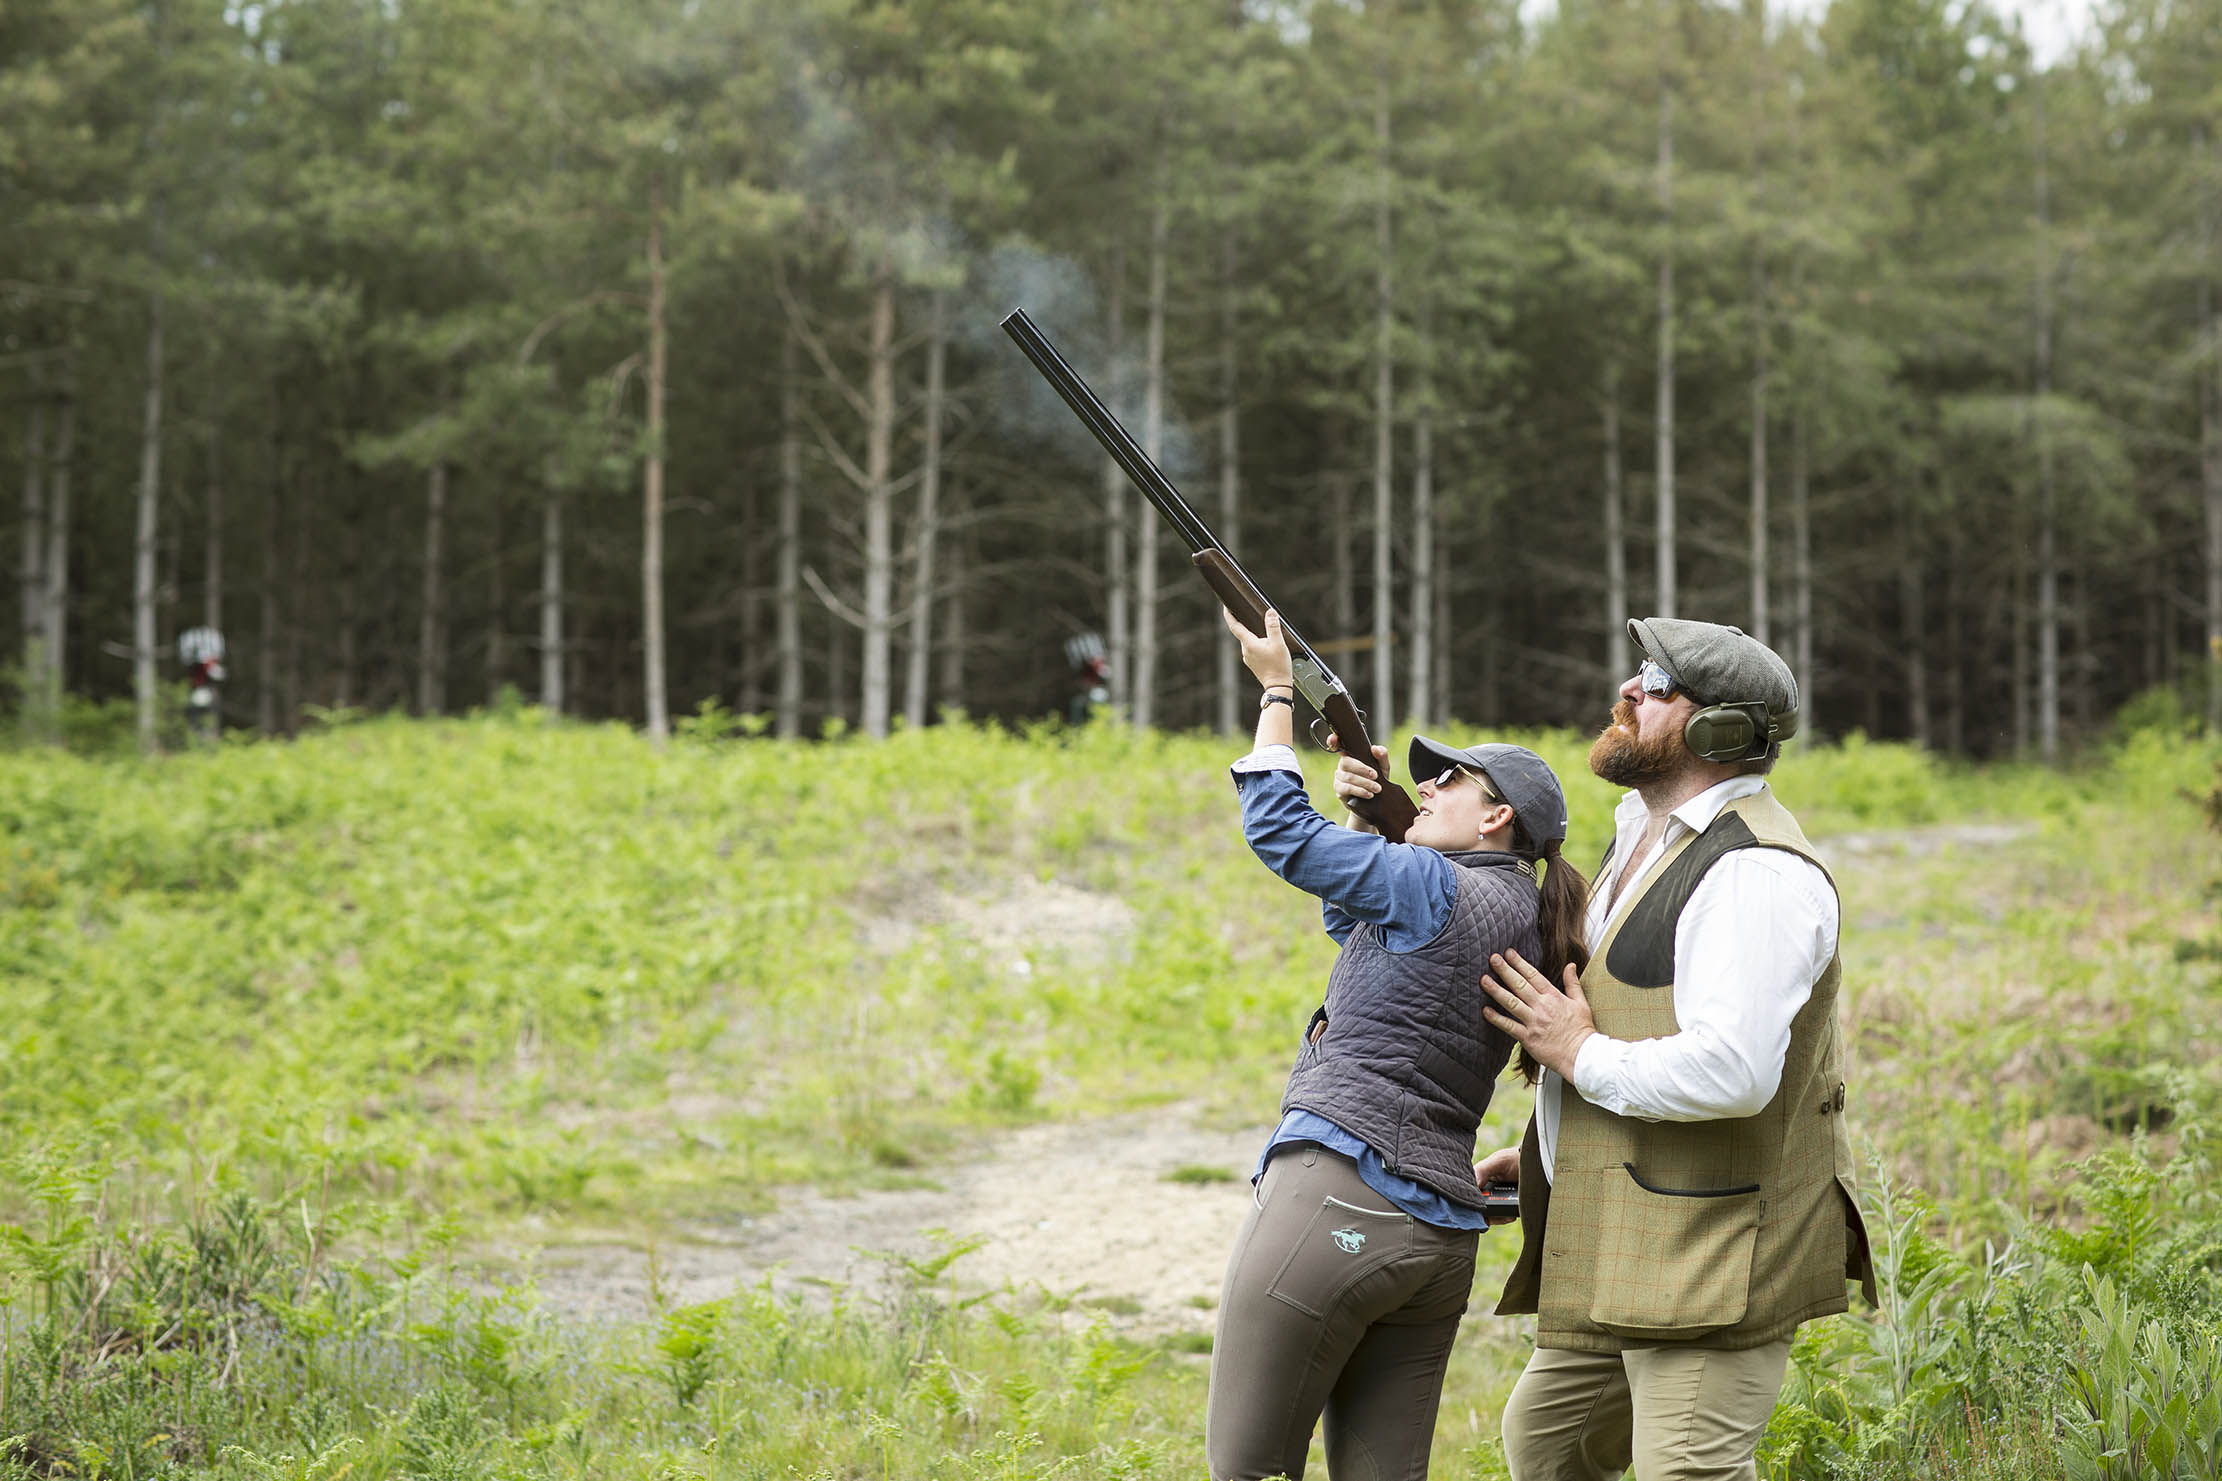 An absolute beginner's guide to clay pigeon shooting, part two: Relax, breathe, trust... and avoid the temptation to squeak in triumph - Country Life